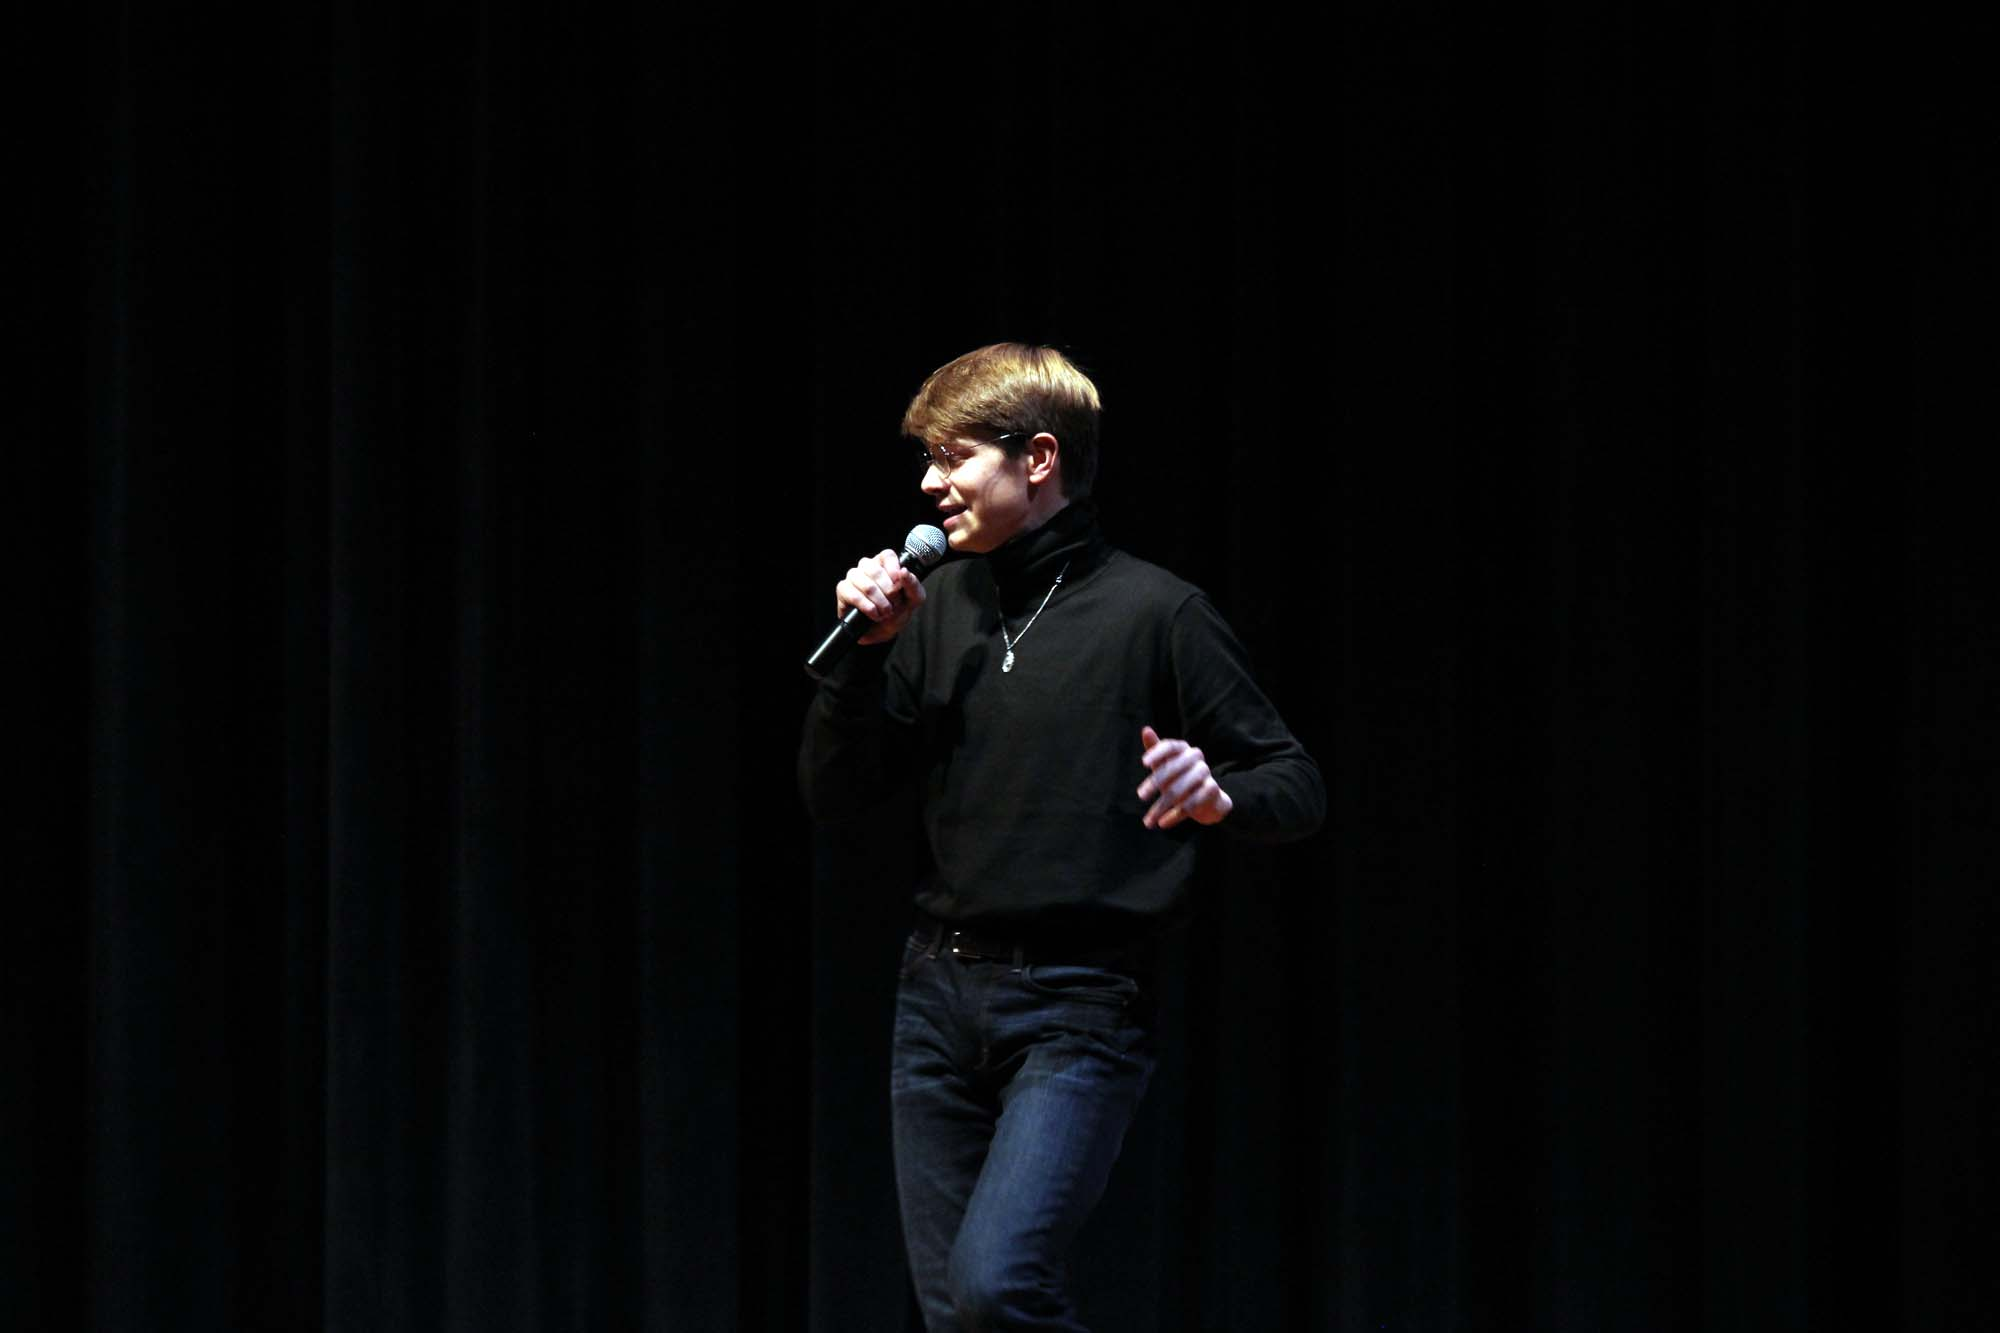 Mr. Mills 2016 J.D. LaBerge performs an acoustic rendition of the Sir Mix-A-Lot song